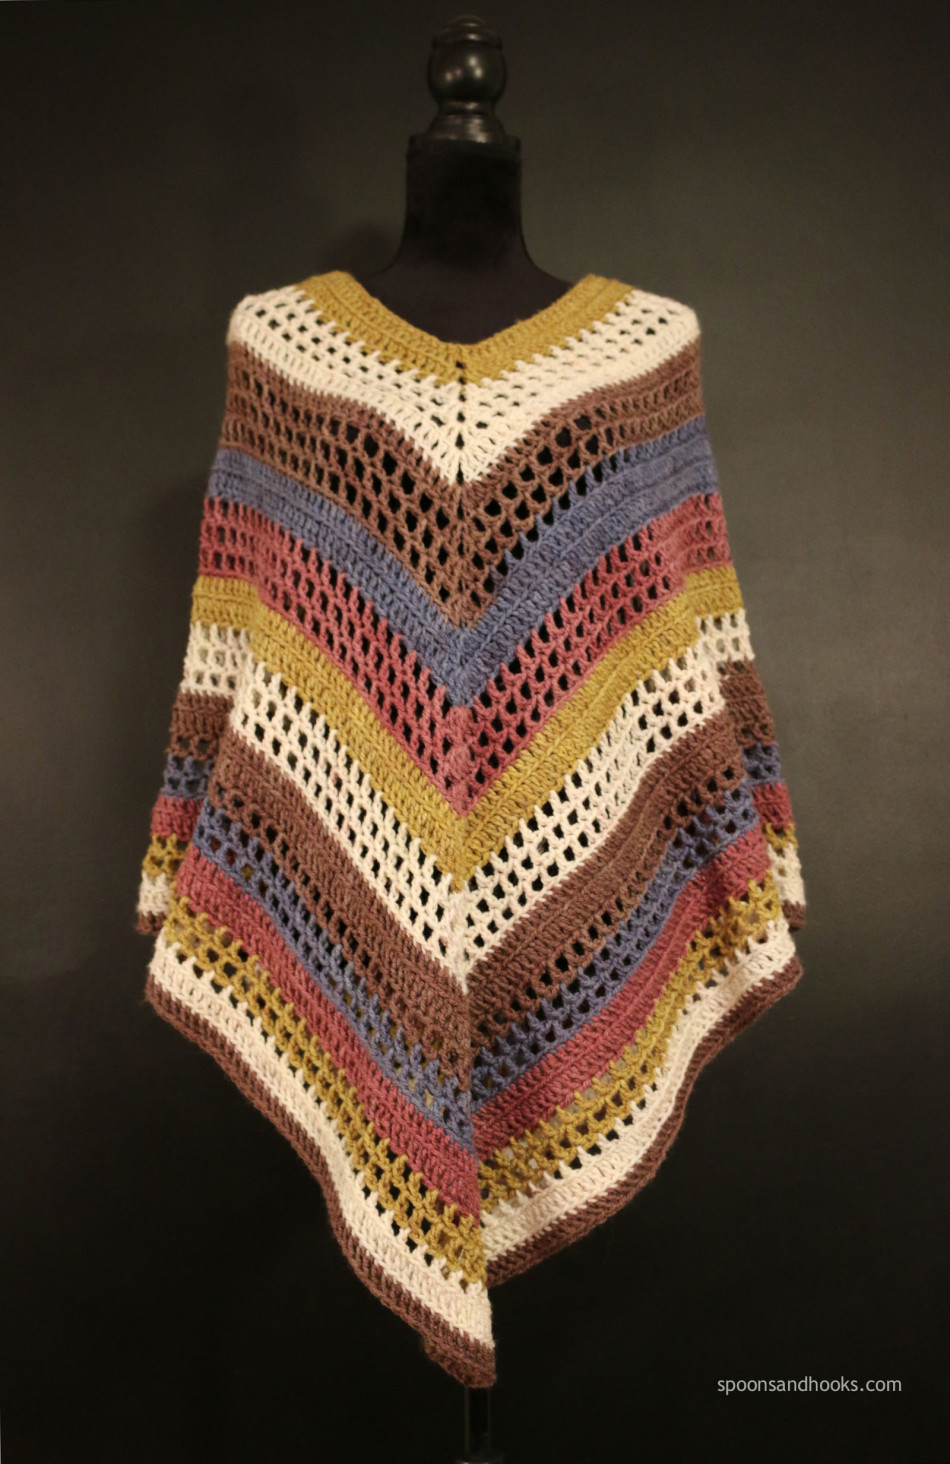 Free Poncho Patterns Inspirational Free Crochet Pattern the Easiest Poncho You'll Ever Make Of Marvelous 41 Models Free Poncho Patterns